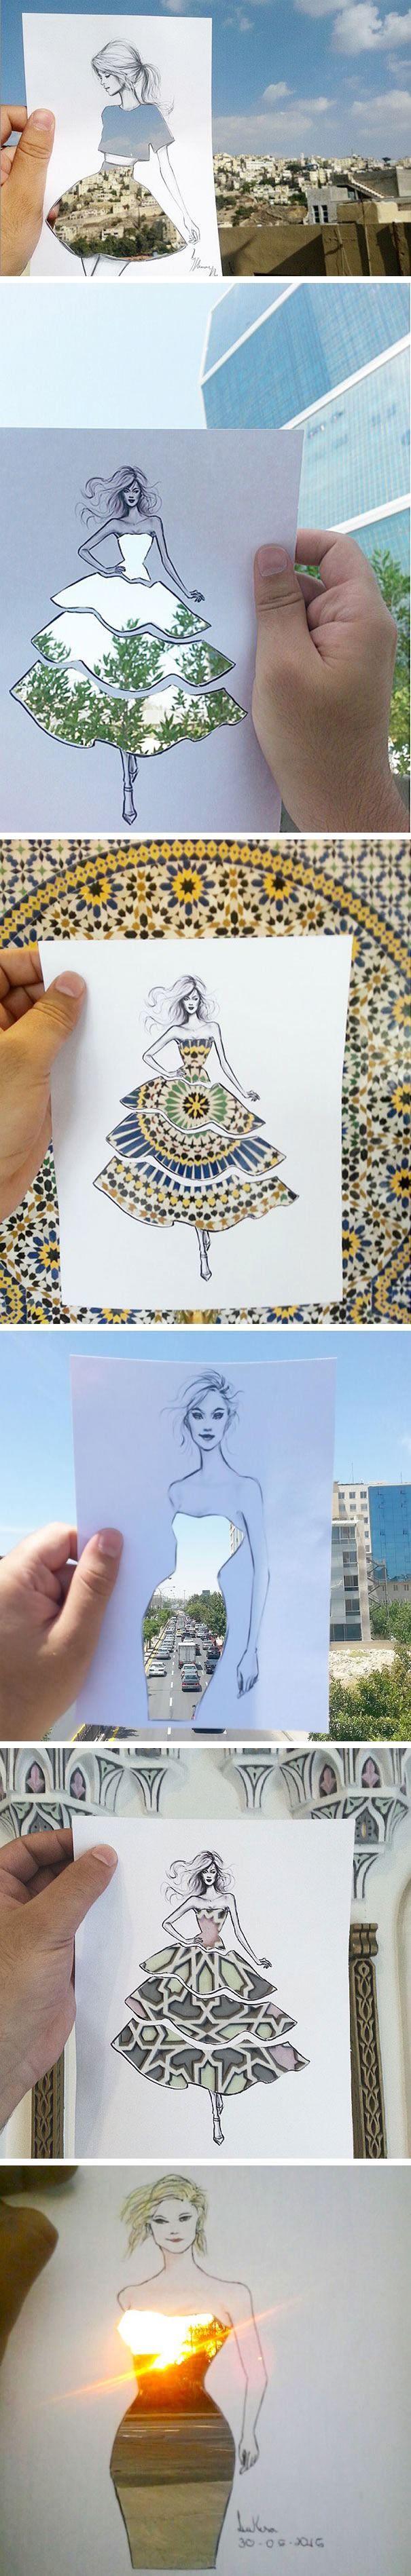 This Fashion Illustrator Completes His Cut-Out Dresses With Clouds And Buildings